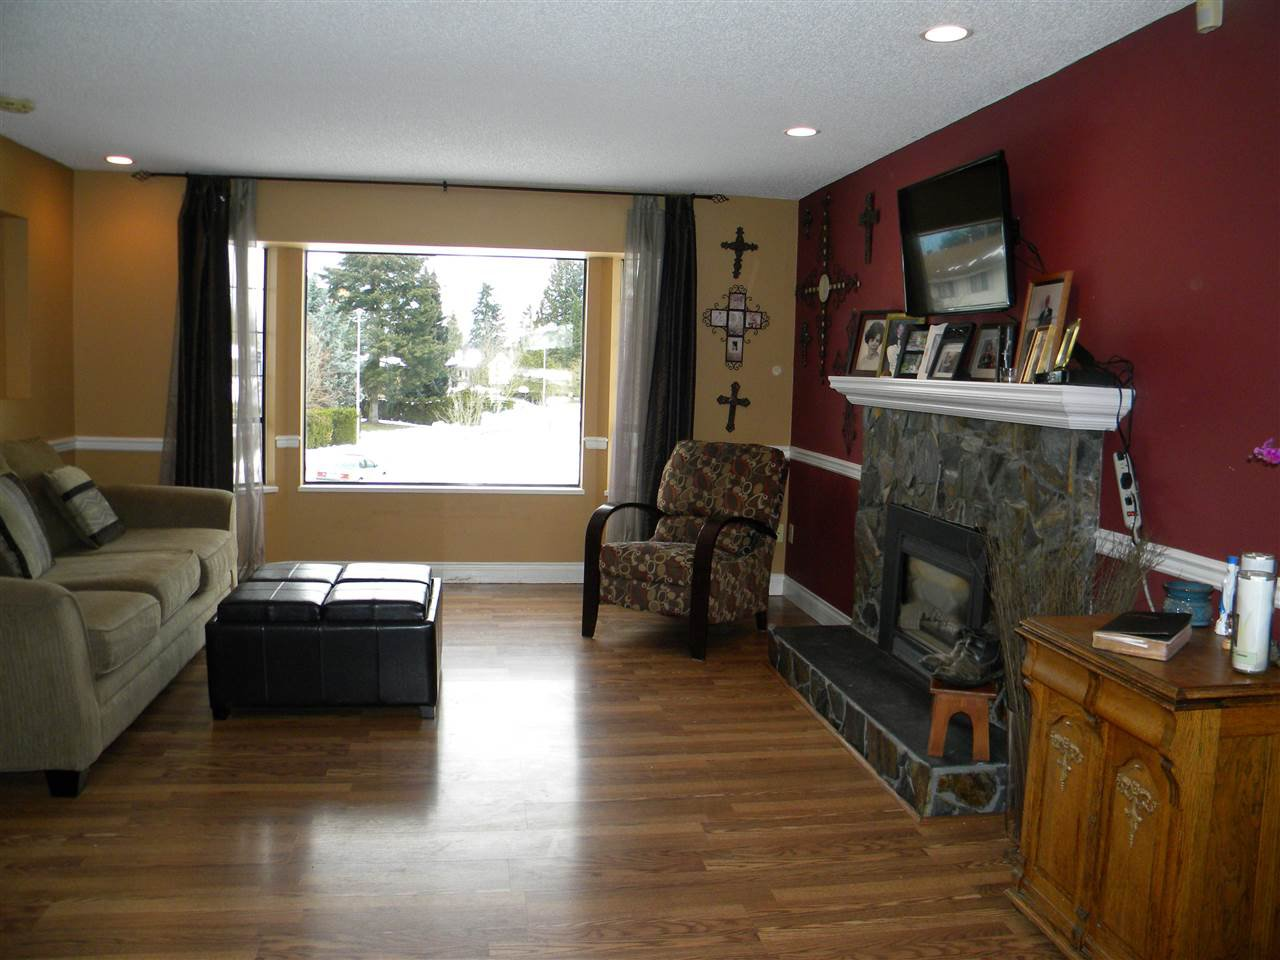 Photo 2: Photos: 15736 95A Avenue in Surrey: Fleetwood Tynehead House for sale : MLS®# R2132651